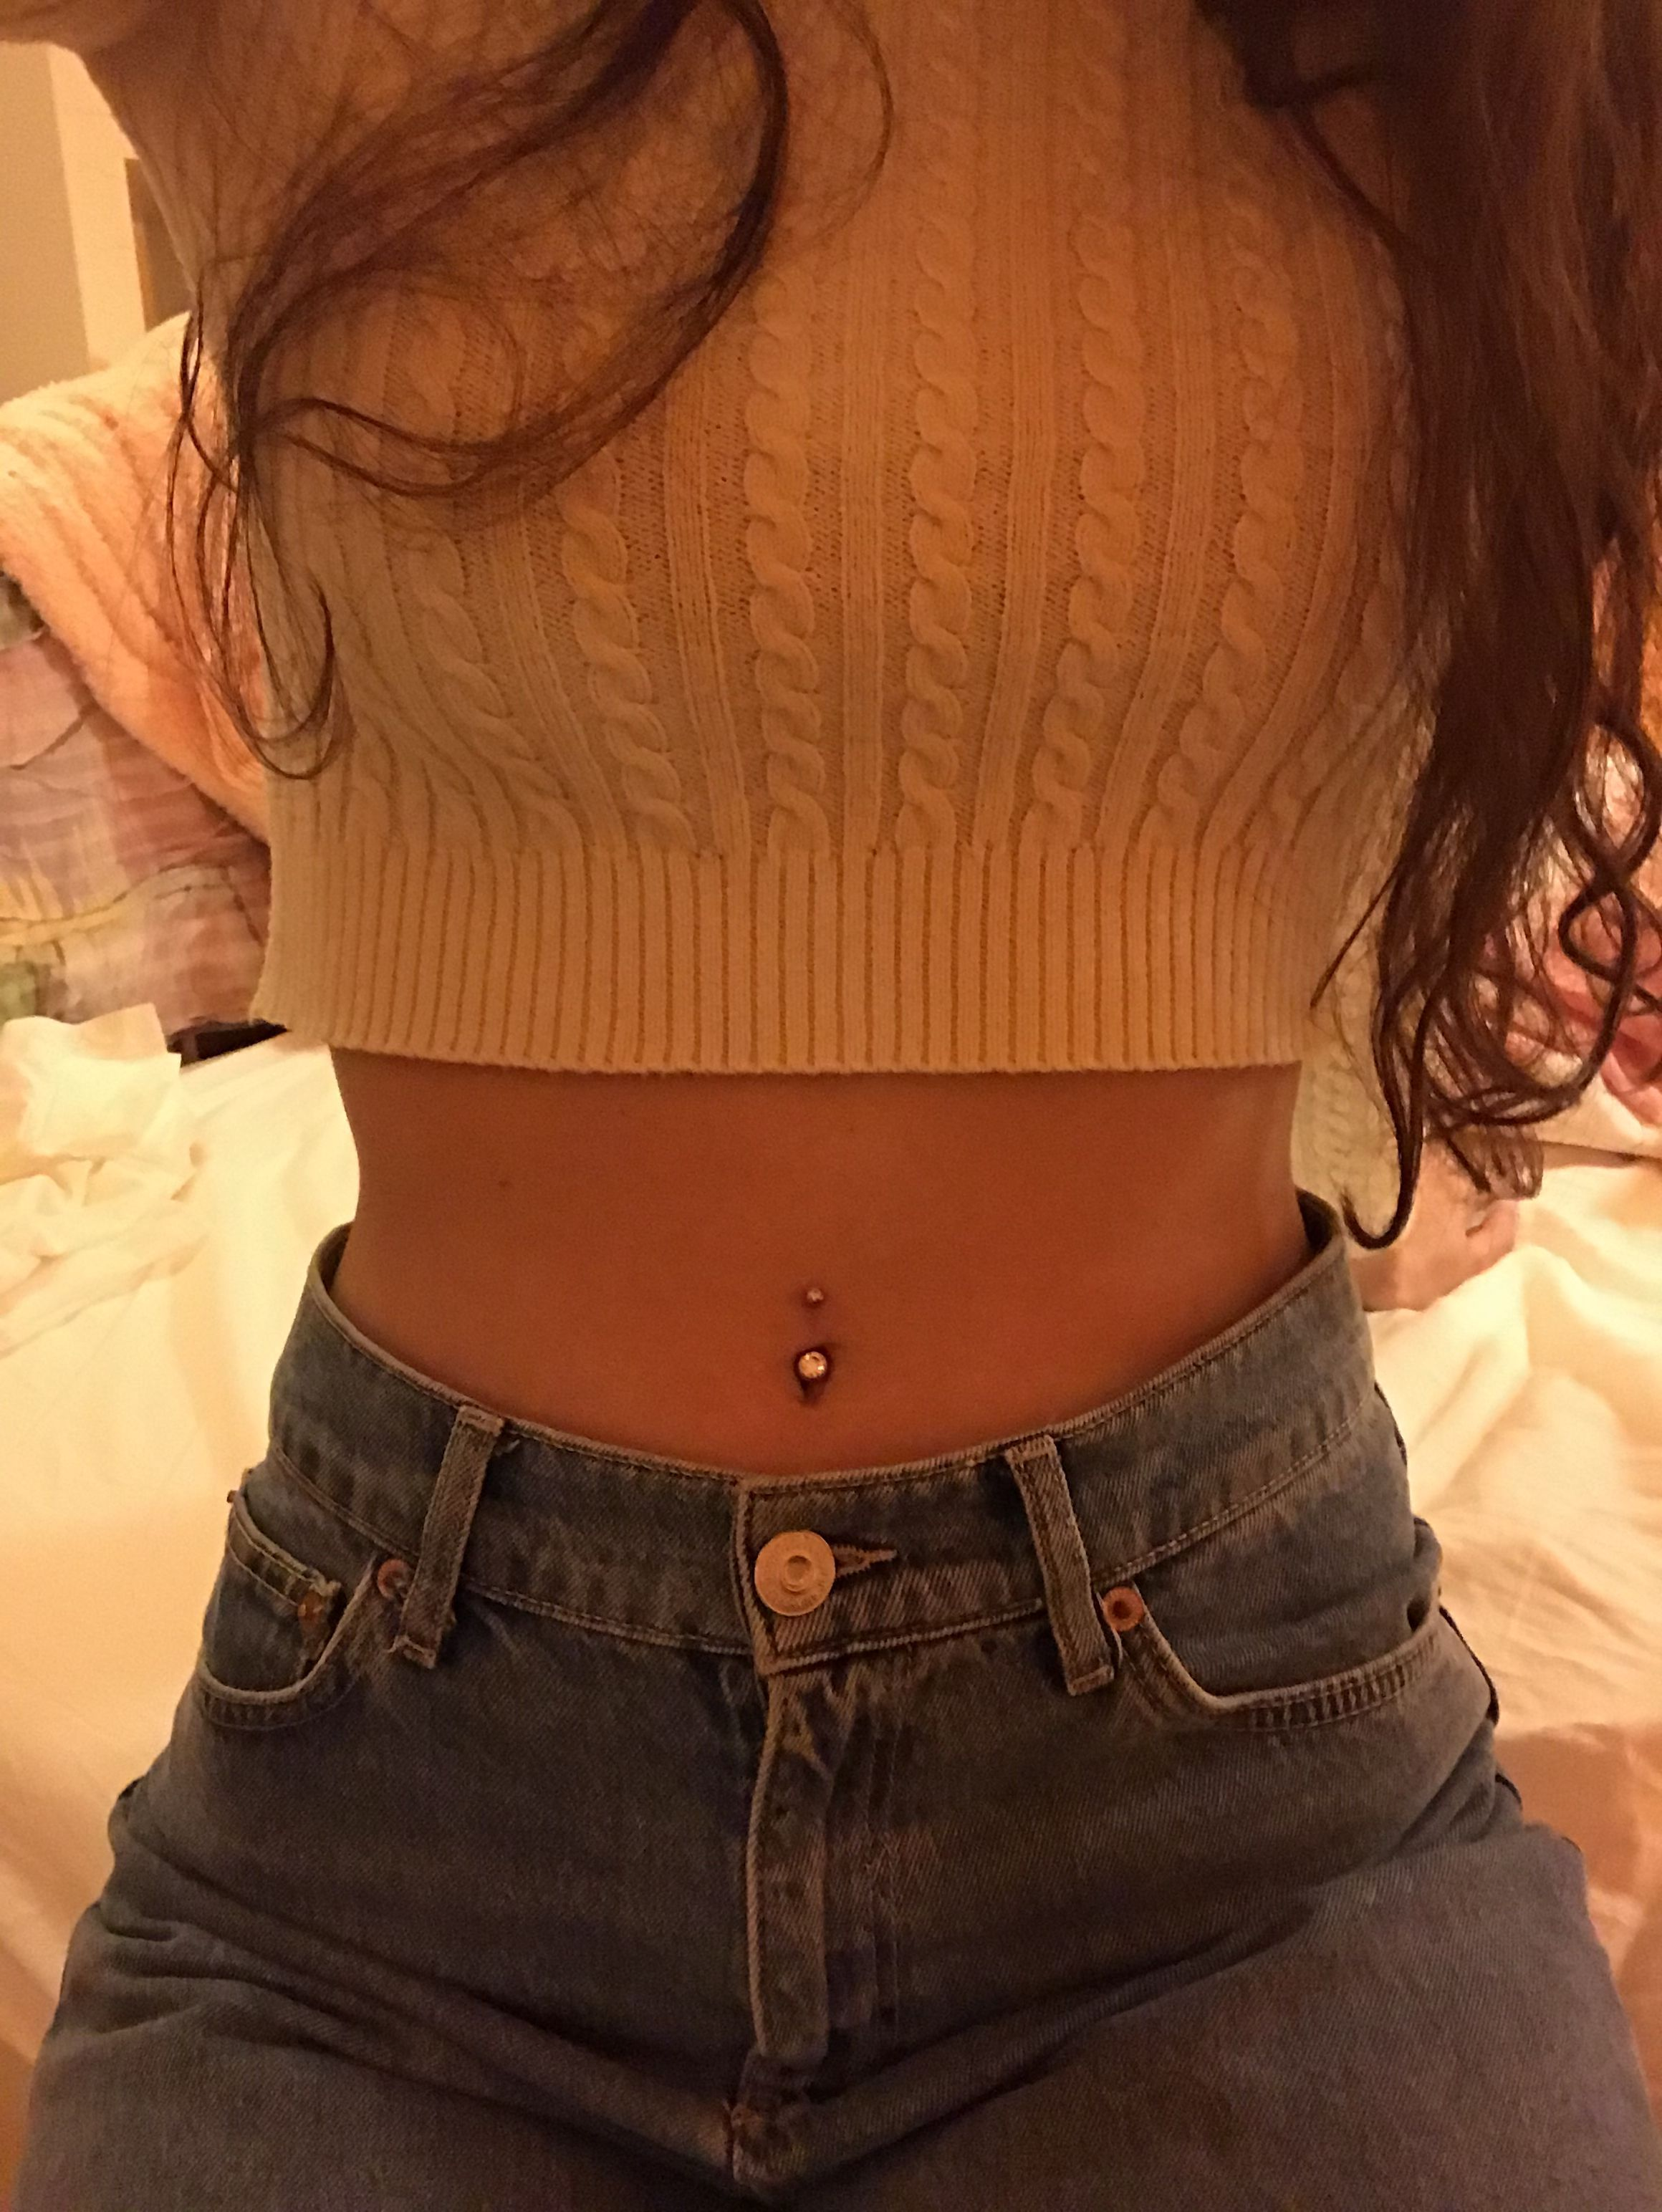 Park Art My WordPress Blog_How To Put On A Waist Trainer With A Belly Piercing